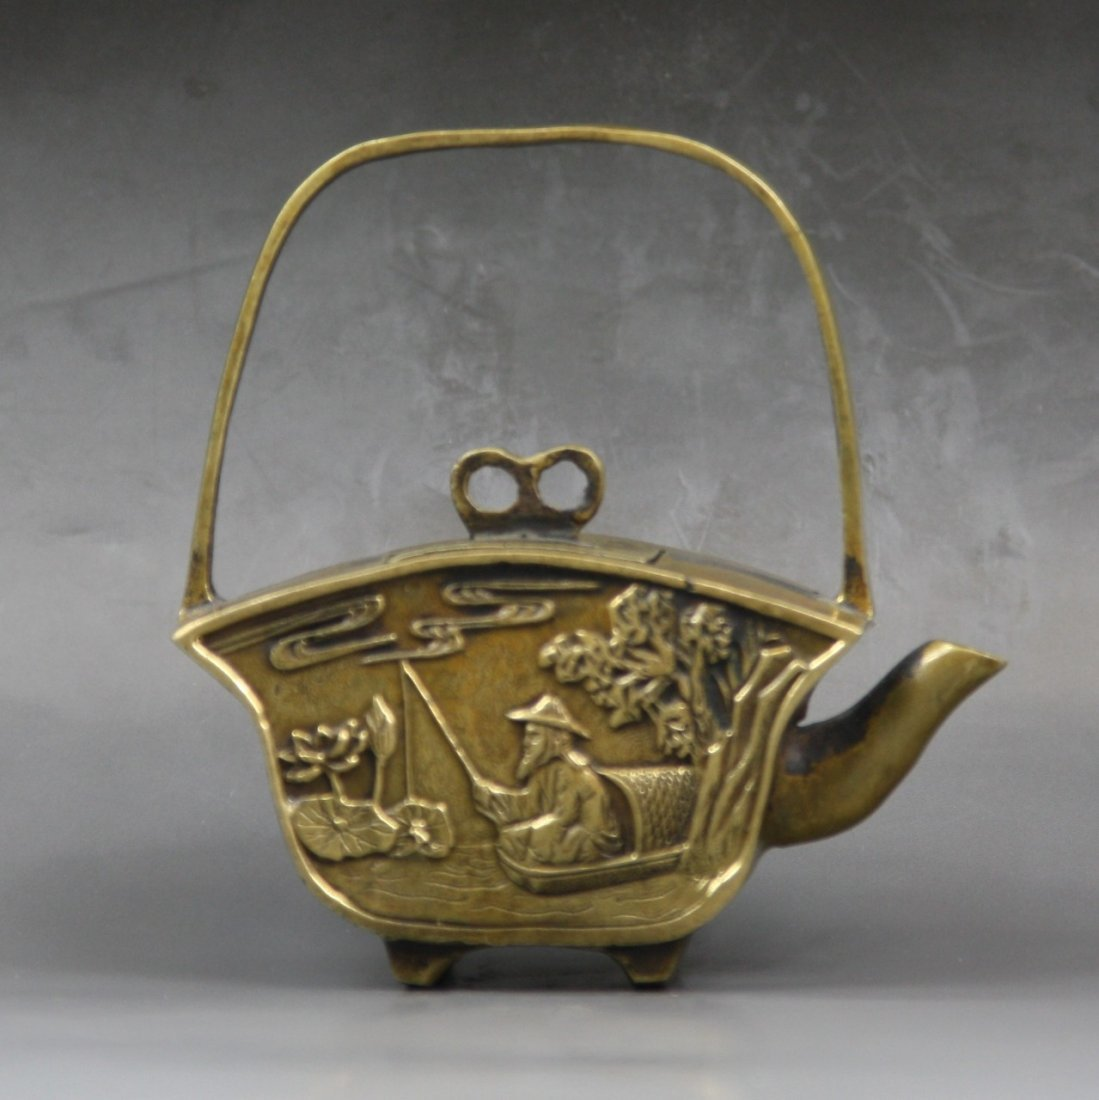 18: A Chinese Antique Brass Teapot